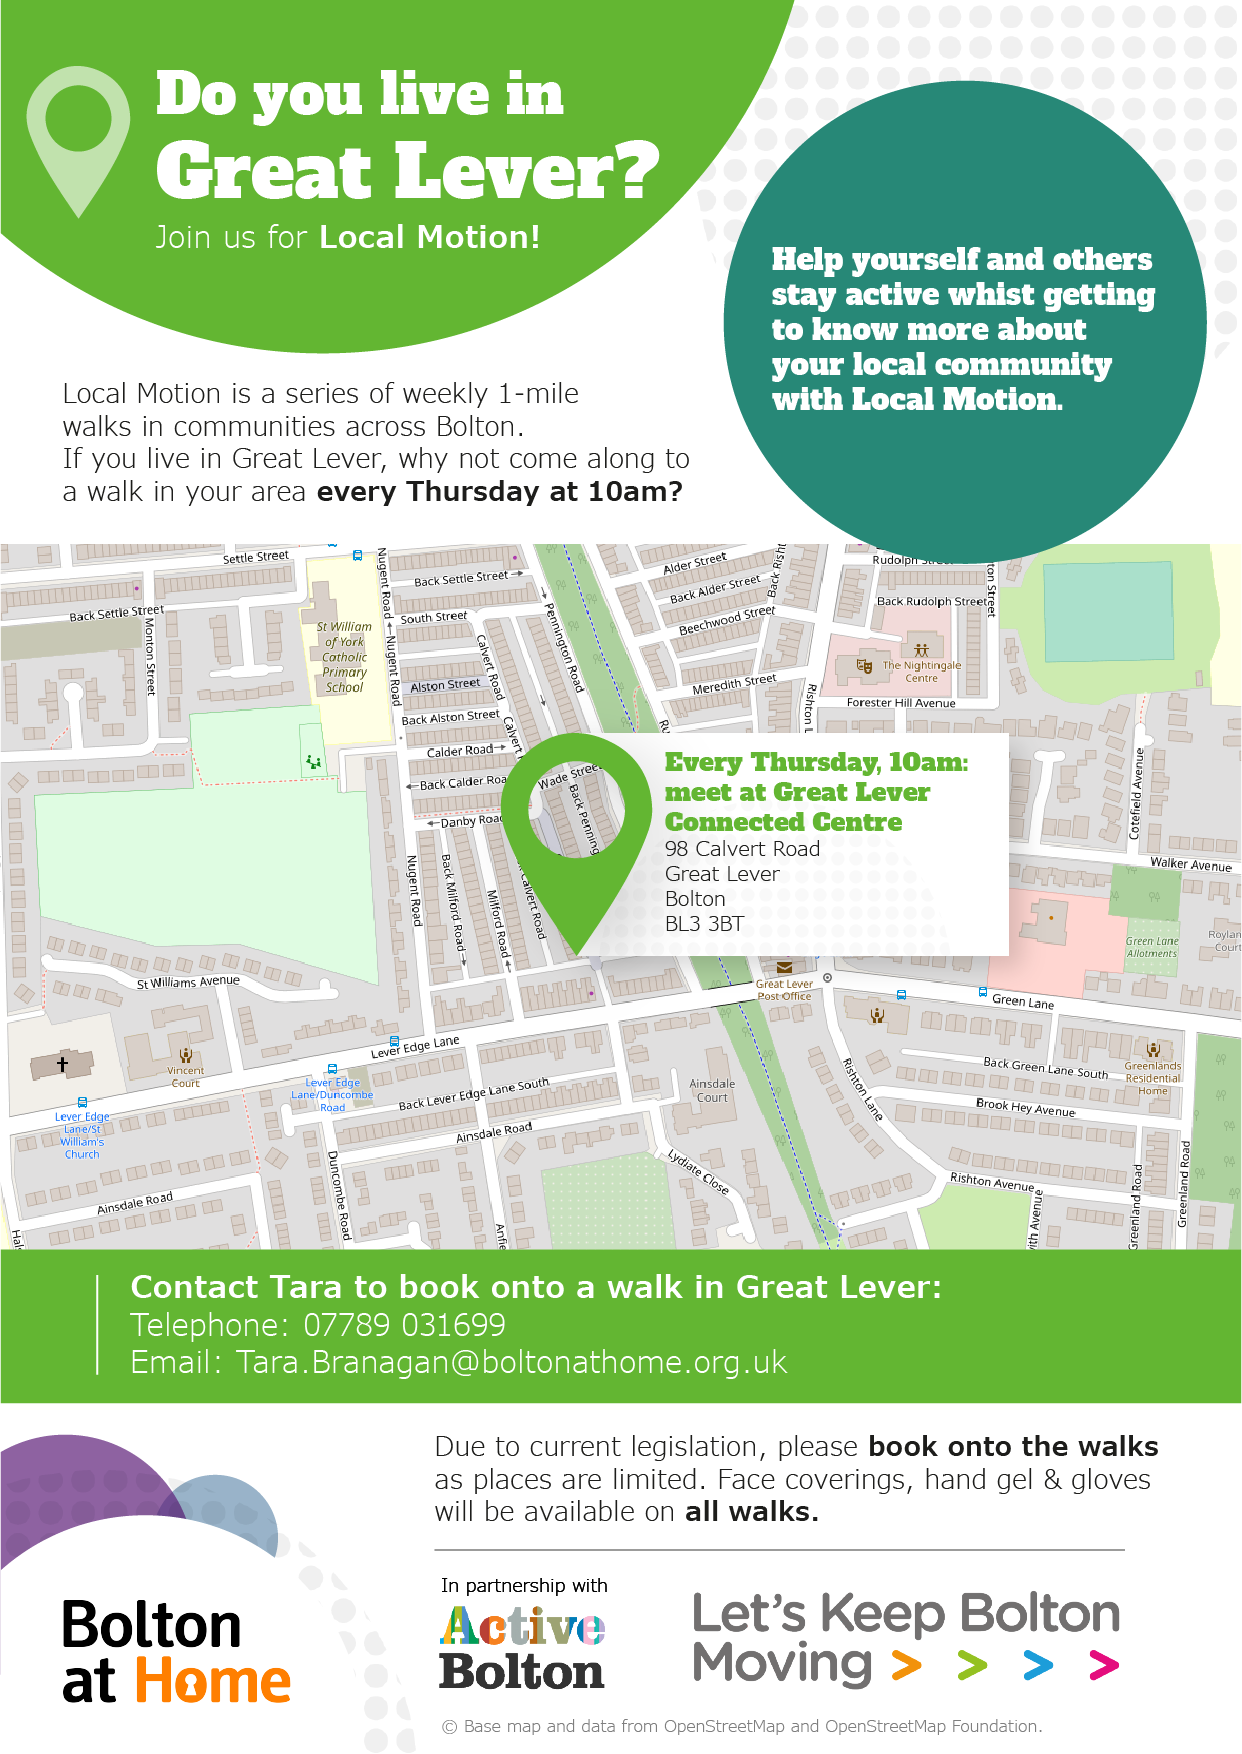 Poster displaying details of Local Motion walks in Great Lever. These details are available in text form using the table in the 'full Local Motion walks schedule below.